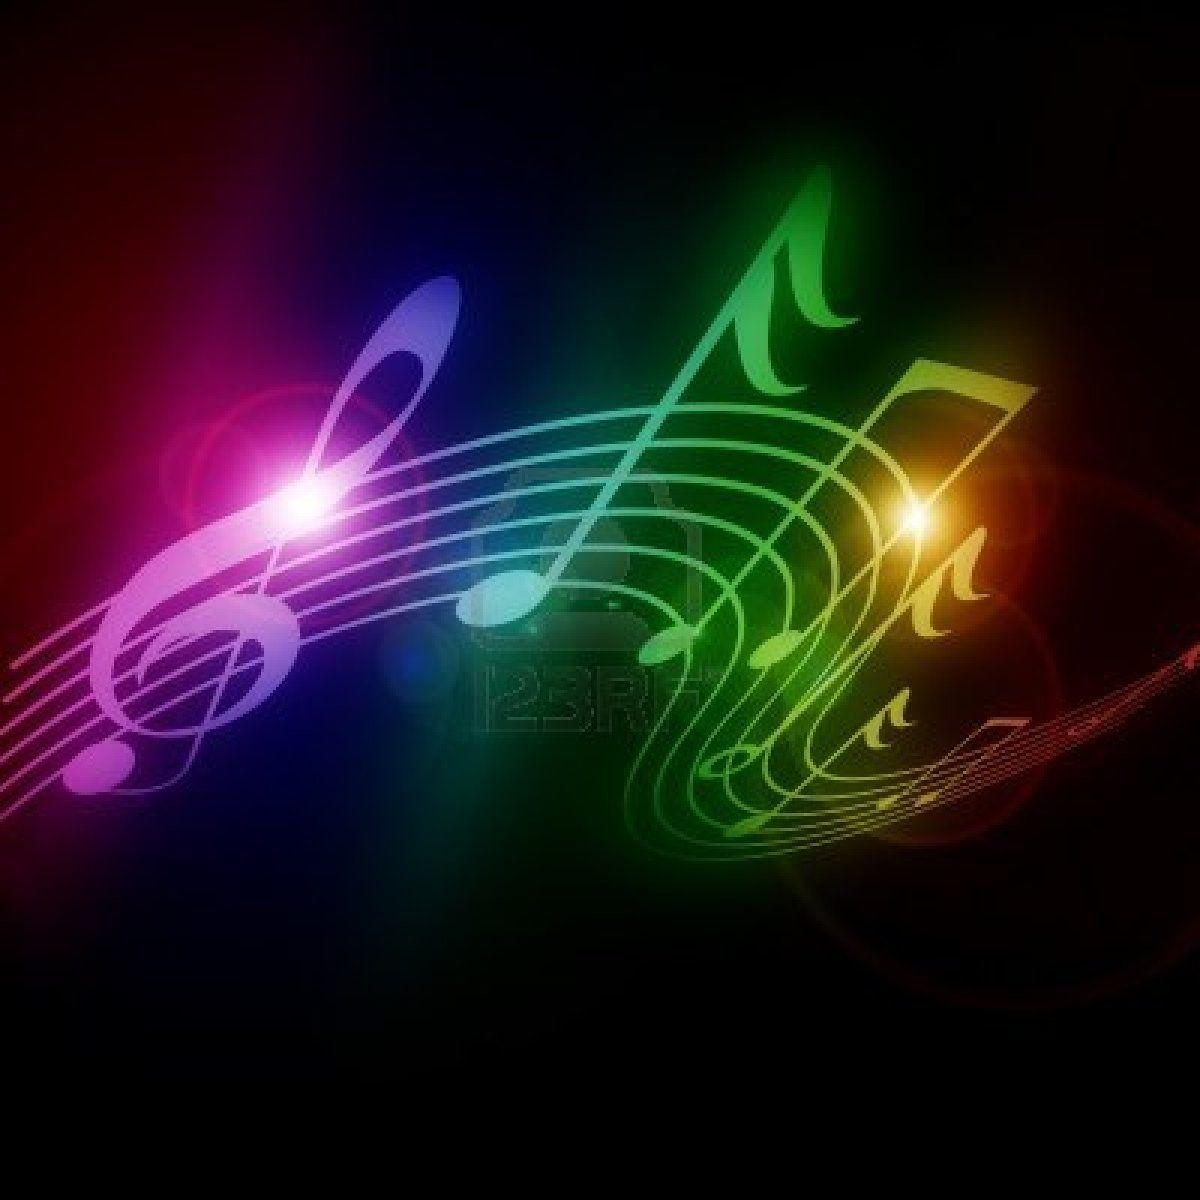 cool colorful music wallpapers - photo #15